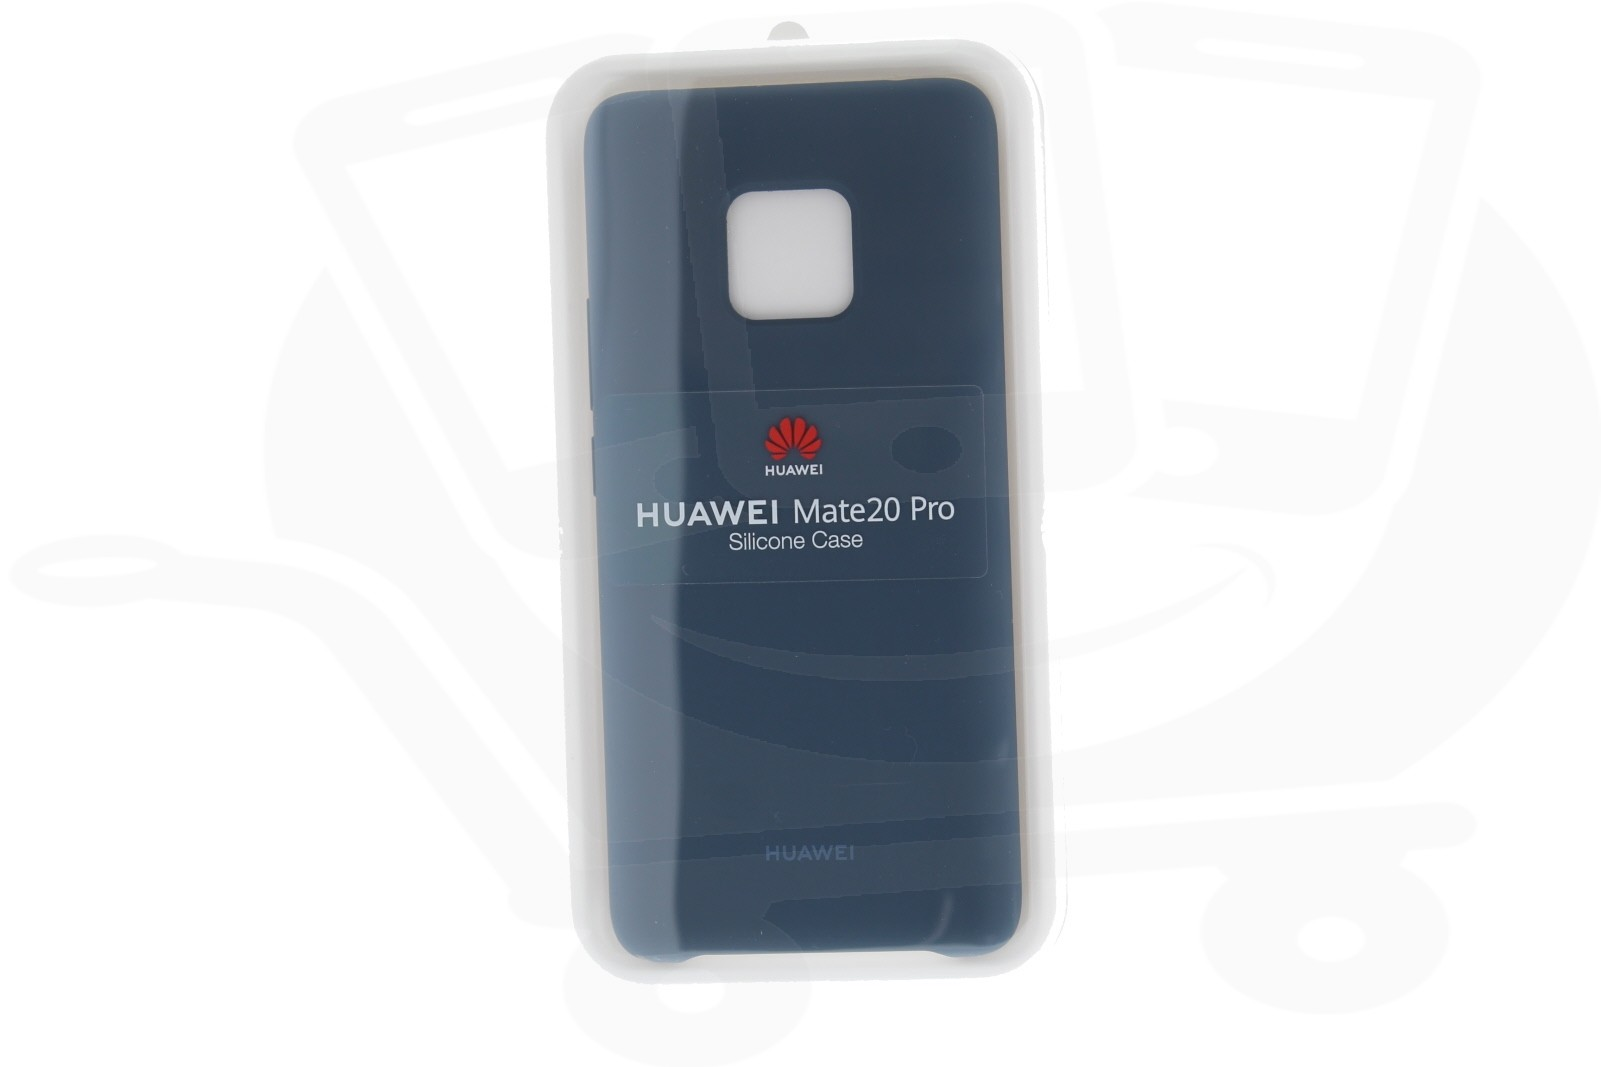 Official Huawei Mate 20 Pro Light Blue Silicon Protective Case